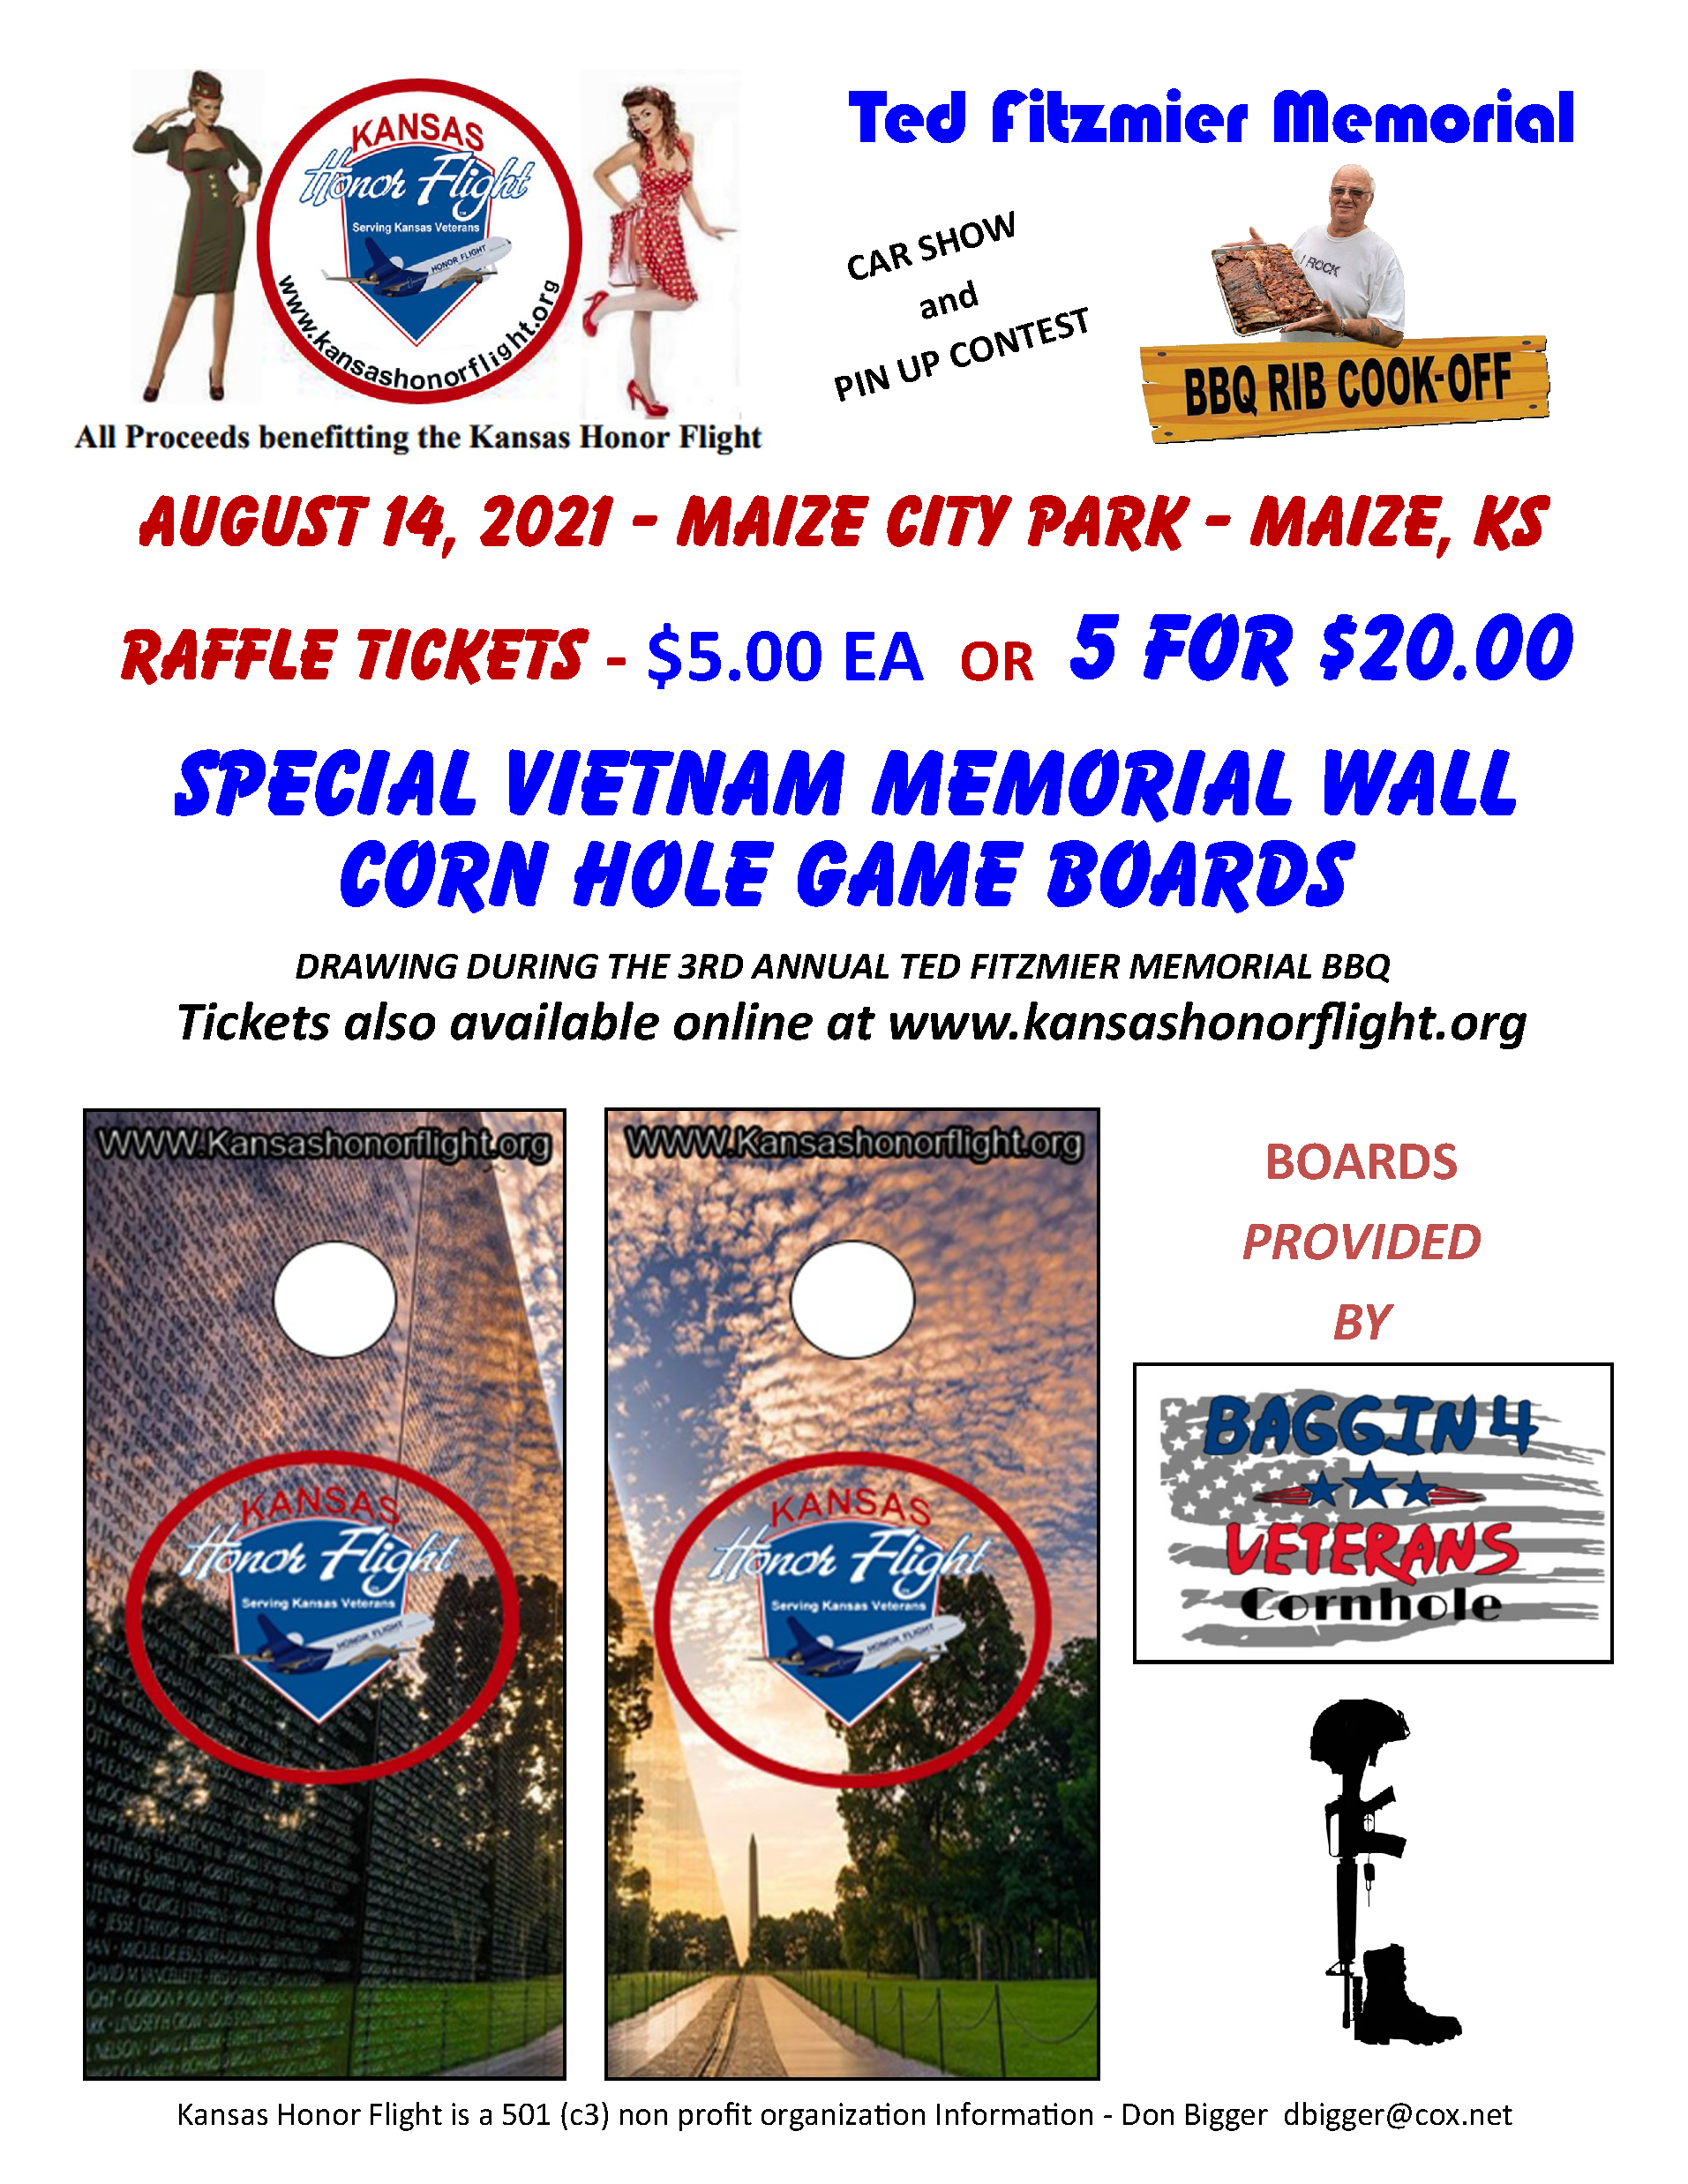 Ted Fitzmier Memorial BBQ RIB COOK-OFF Car show and Pin up contest All Proceeds benefitting the Kansas Honor Flight August 14, 2021 - Maize City Park - Maize, KS Raffle Tickets $5.00 each or 5 for $20 Special Vietnam Memorial Wall corn hole game boards Drawing during the 3rd annual Ted Fitzmier Memorial BBQ Tickets also available online at www.kansashonorflight.org Boards provided by BAGGIN4 VETERANS Cornhole Kansas Honor Flight is a 501(c3) non profit organization information - Don Bigger dbigger@cox.net